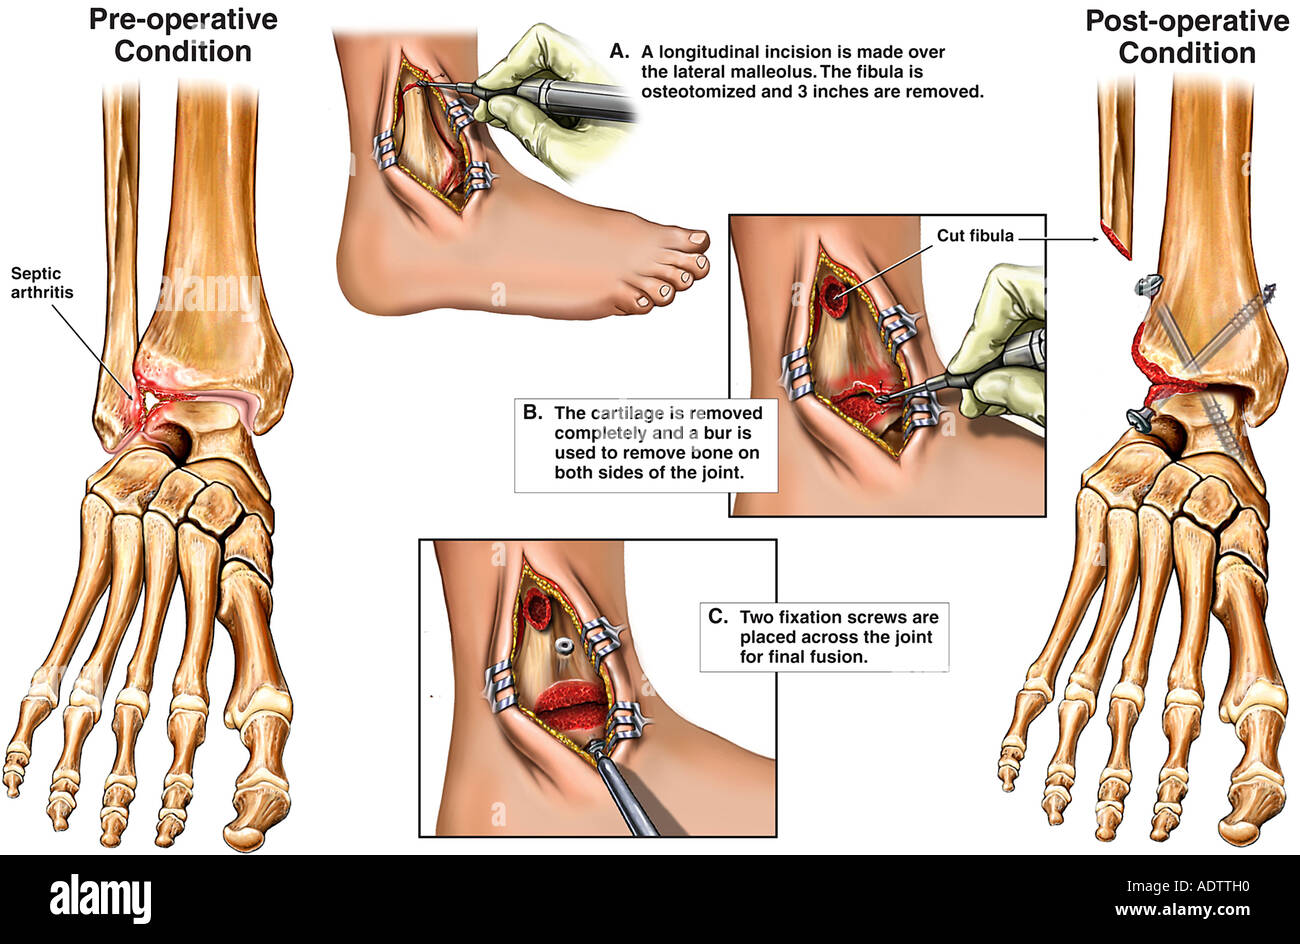 Lateral Malleolus Stock Photos & Lateral Malleolus Stock Images - Alamy